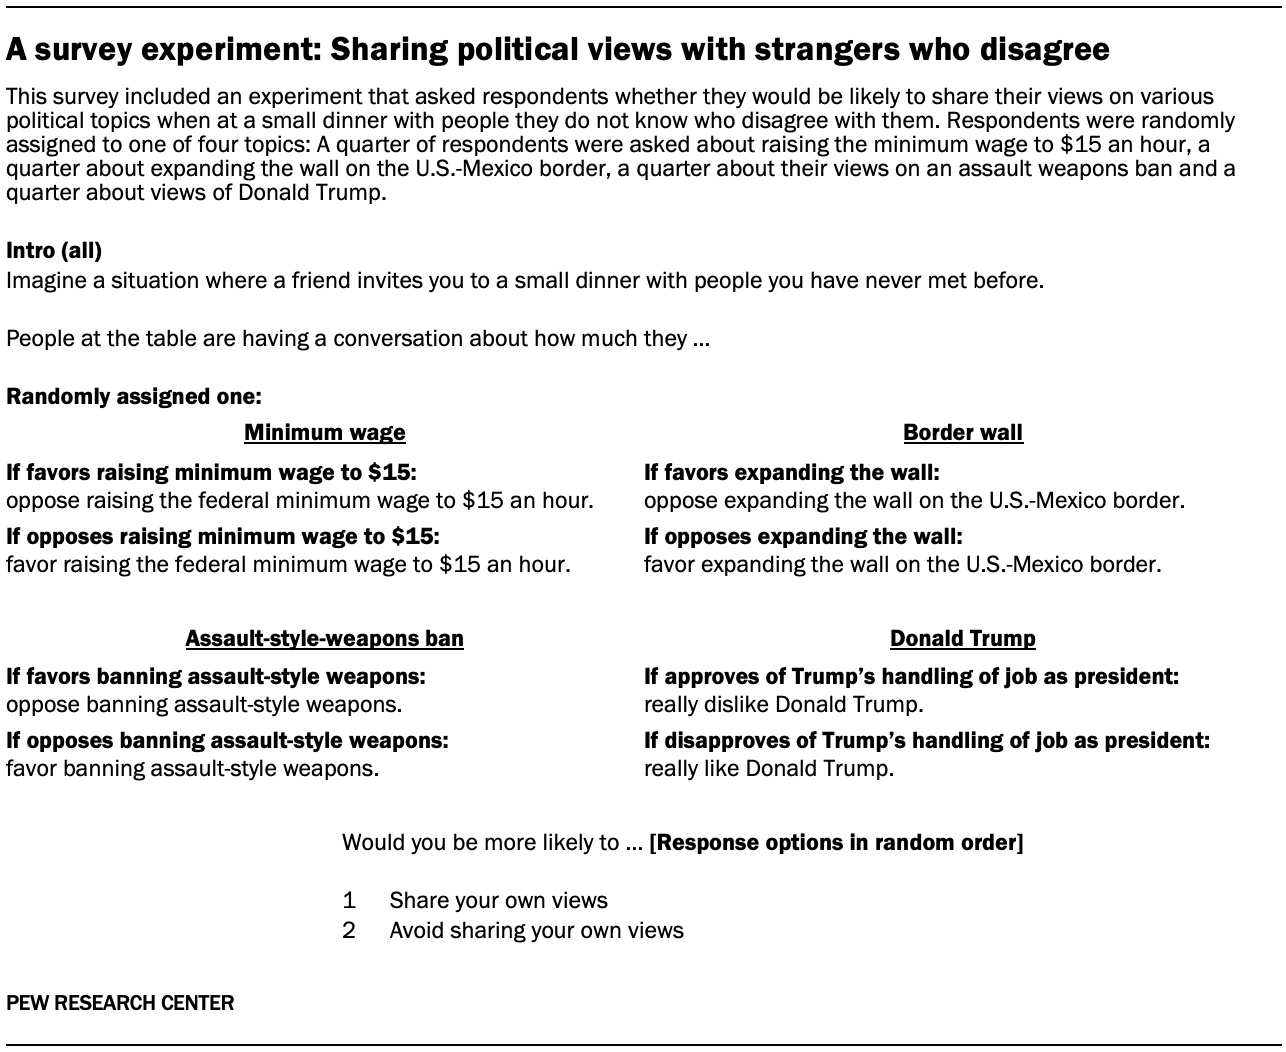 A survey experiment: Sharing political views with strangers who disagree